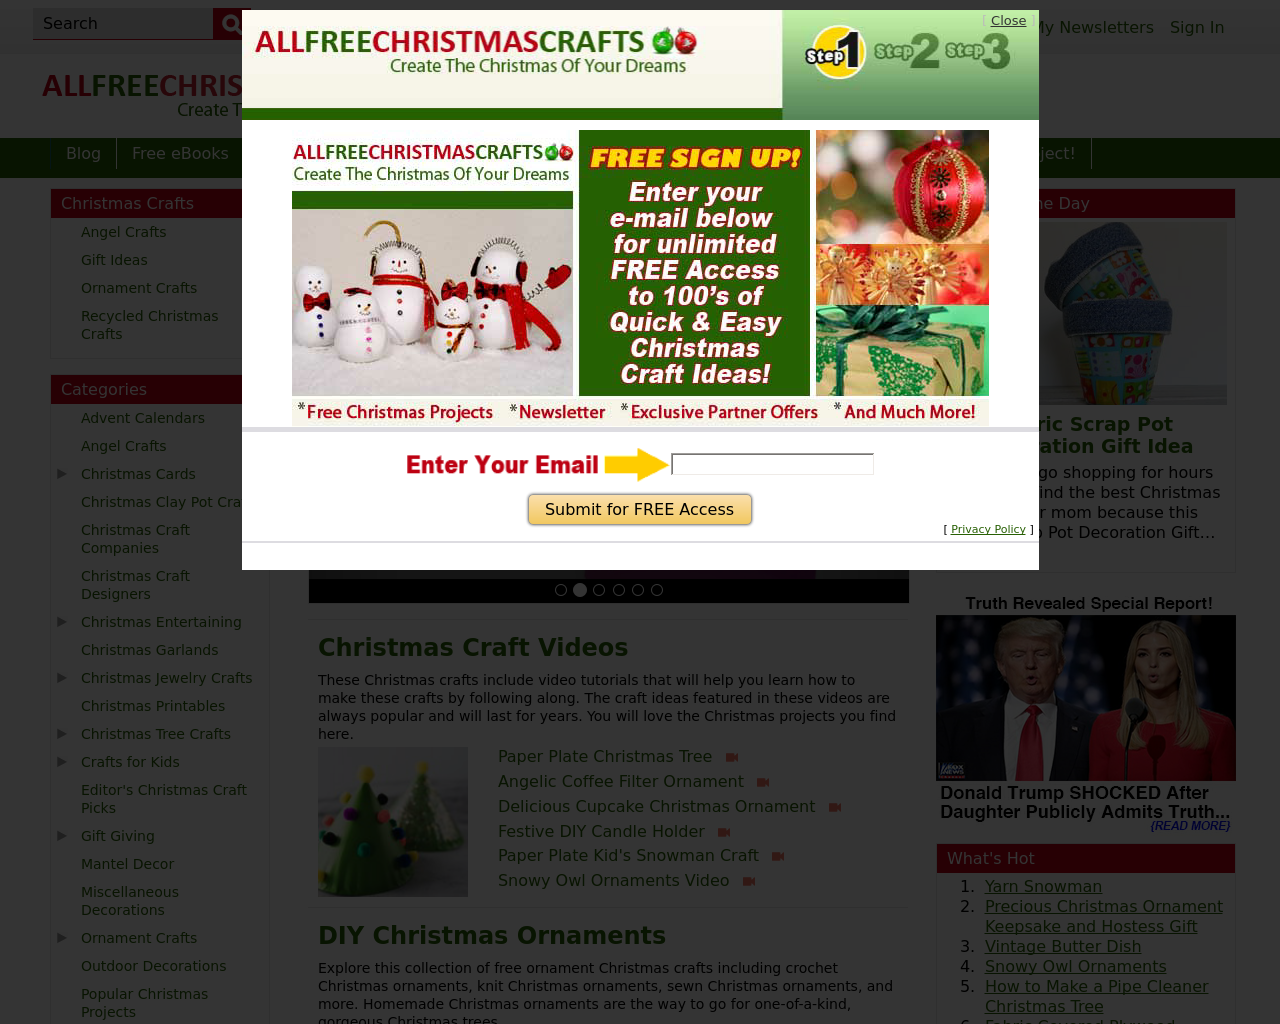 All-Free-Christmas-Crafts-Advertising-Reviews-Pricing